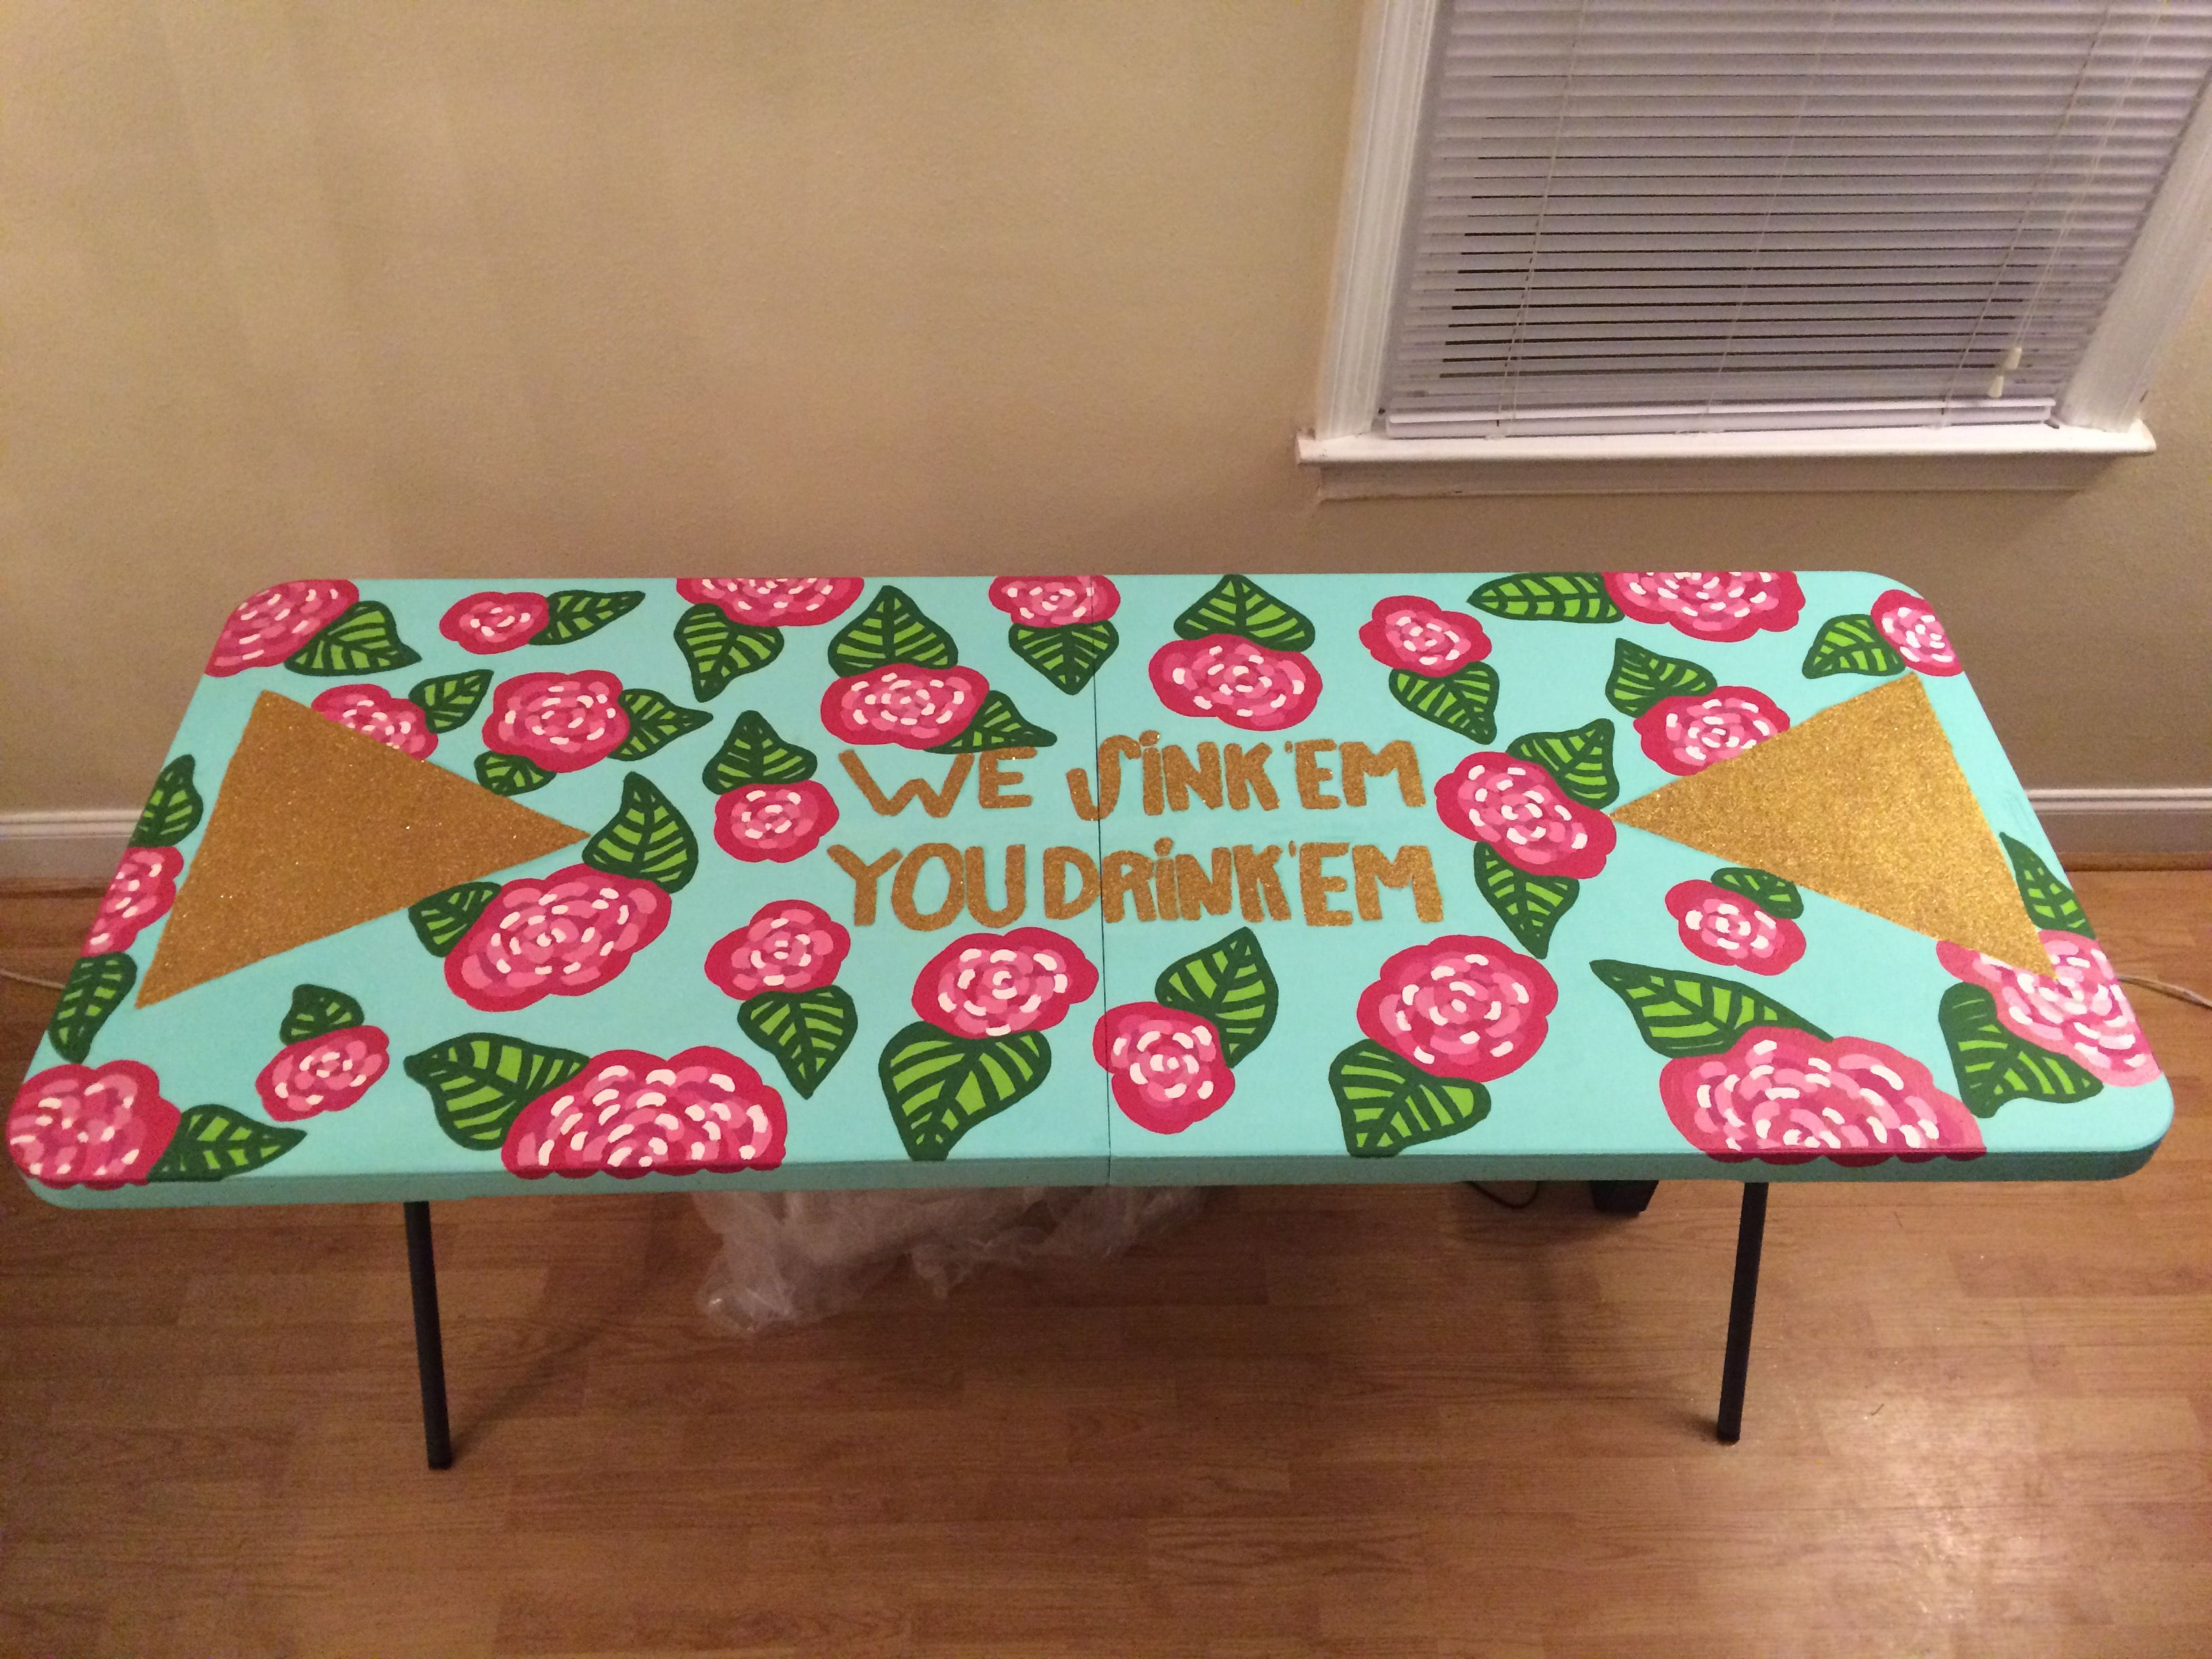 Homemade beer pong table - Making A Lilly Inspired Beer Pong Table Tsm